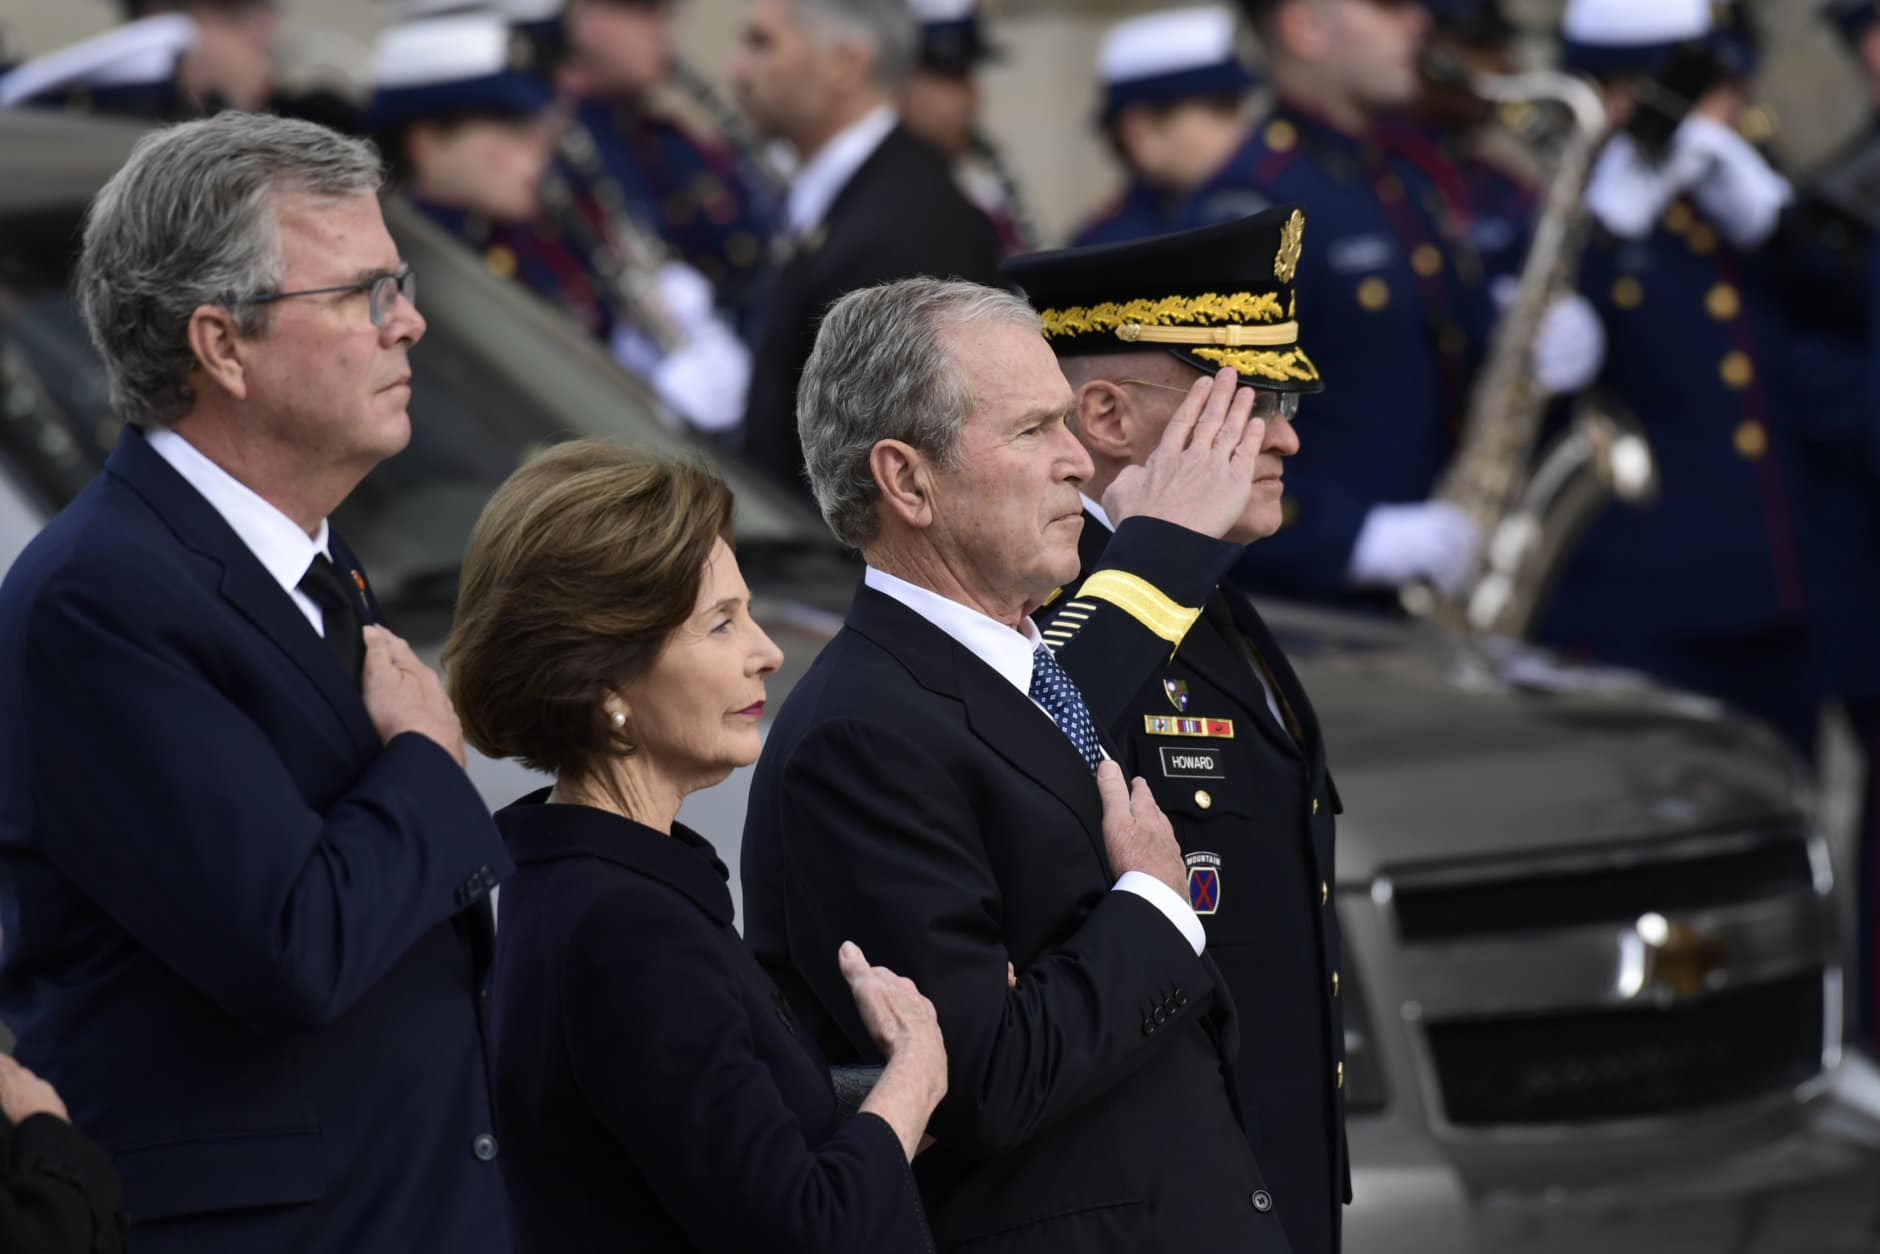 President George W. Bush, his wife Laura Bush and brother Jeb Bush watch as the casket of former President George H.W. Bush arrives at the National Cathedral, Wednesday, Dec. 5, 2018, in Washington, for a State Funeral.(AP Photo/Susan Walsh)